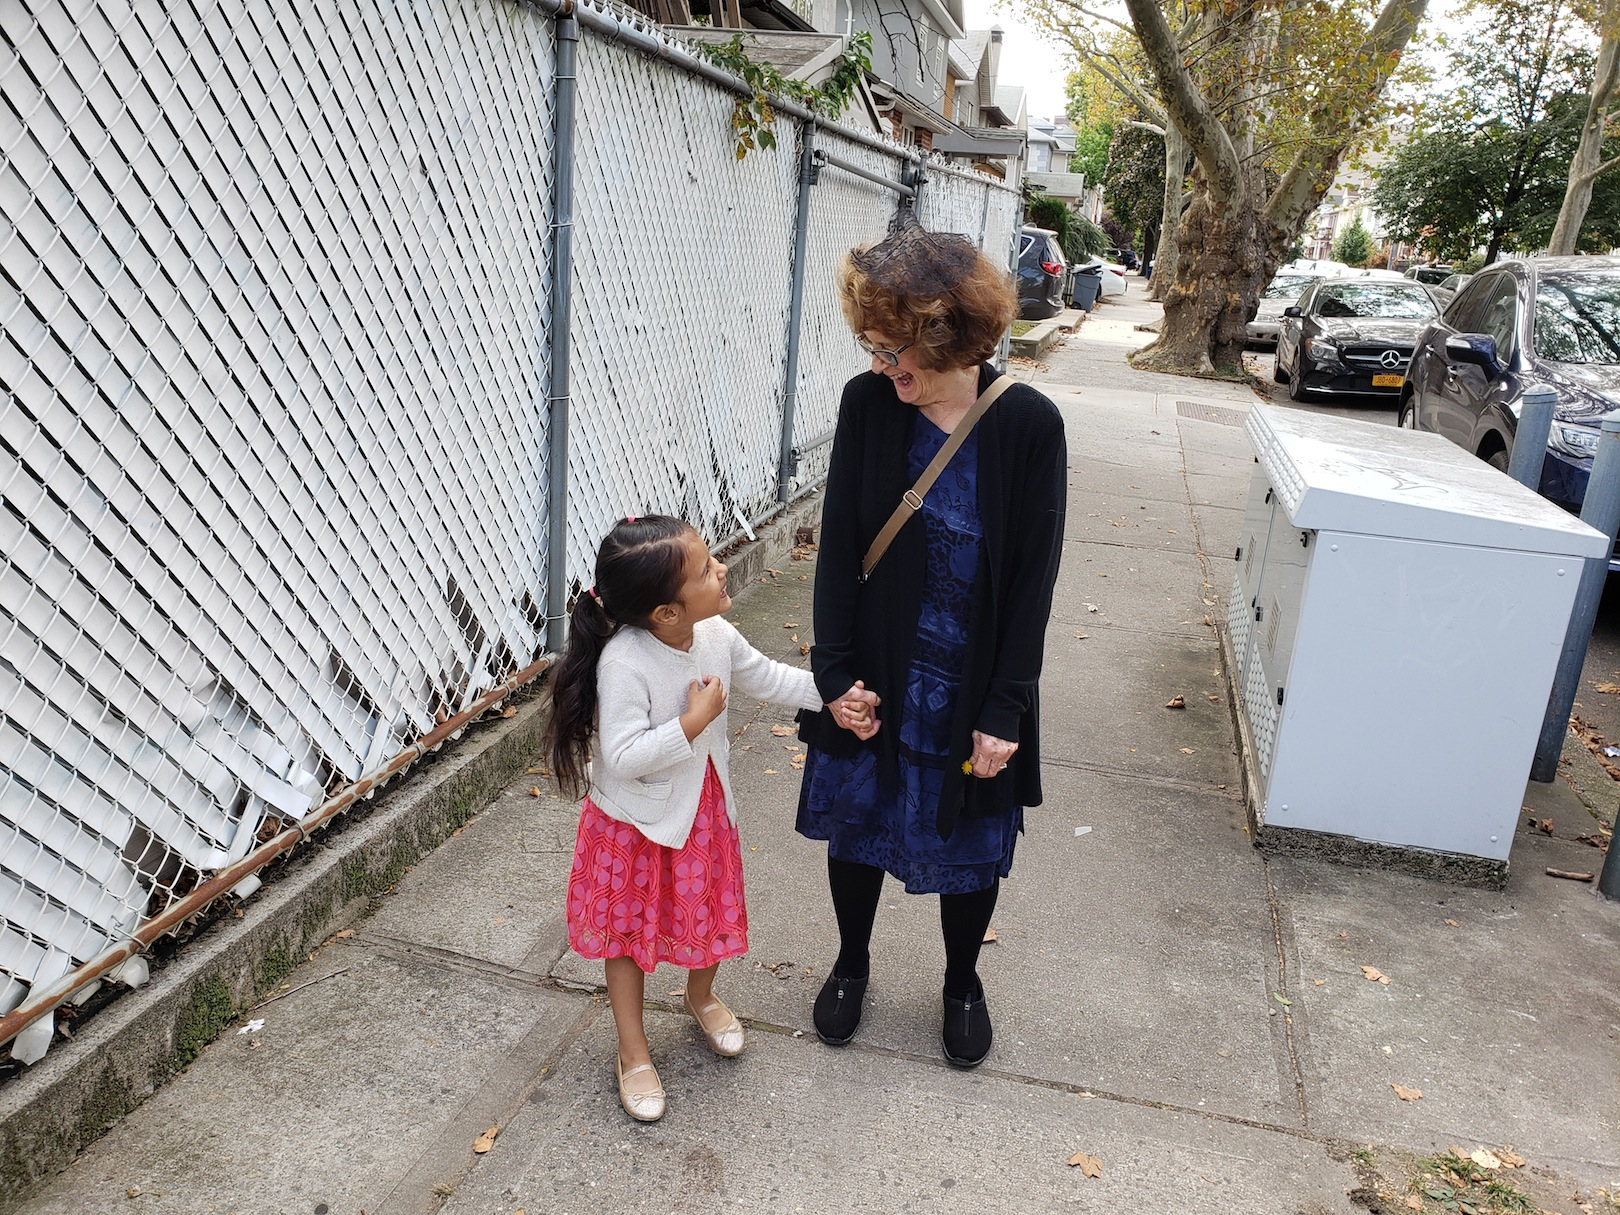 Helen Rose and Grandma Walking to Synagogue Rosh Hashanah, 2019